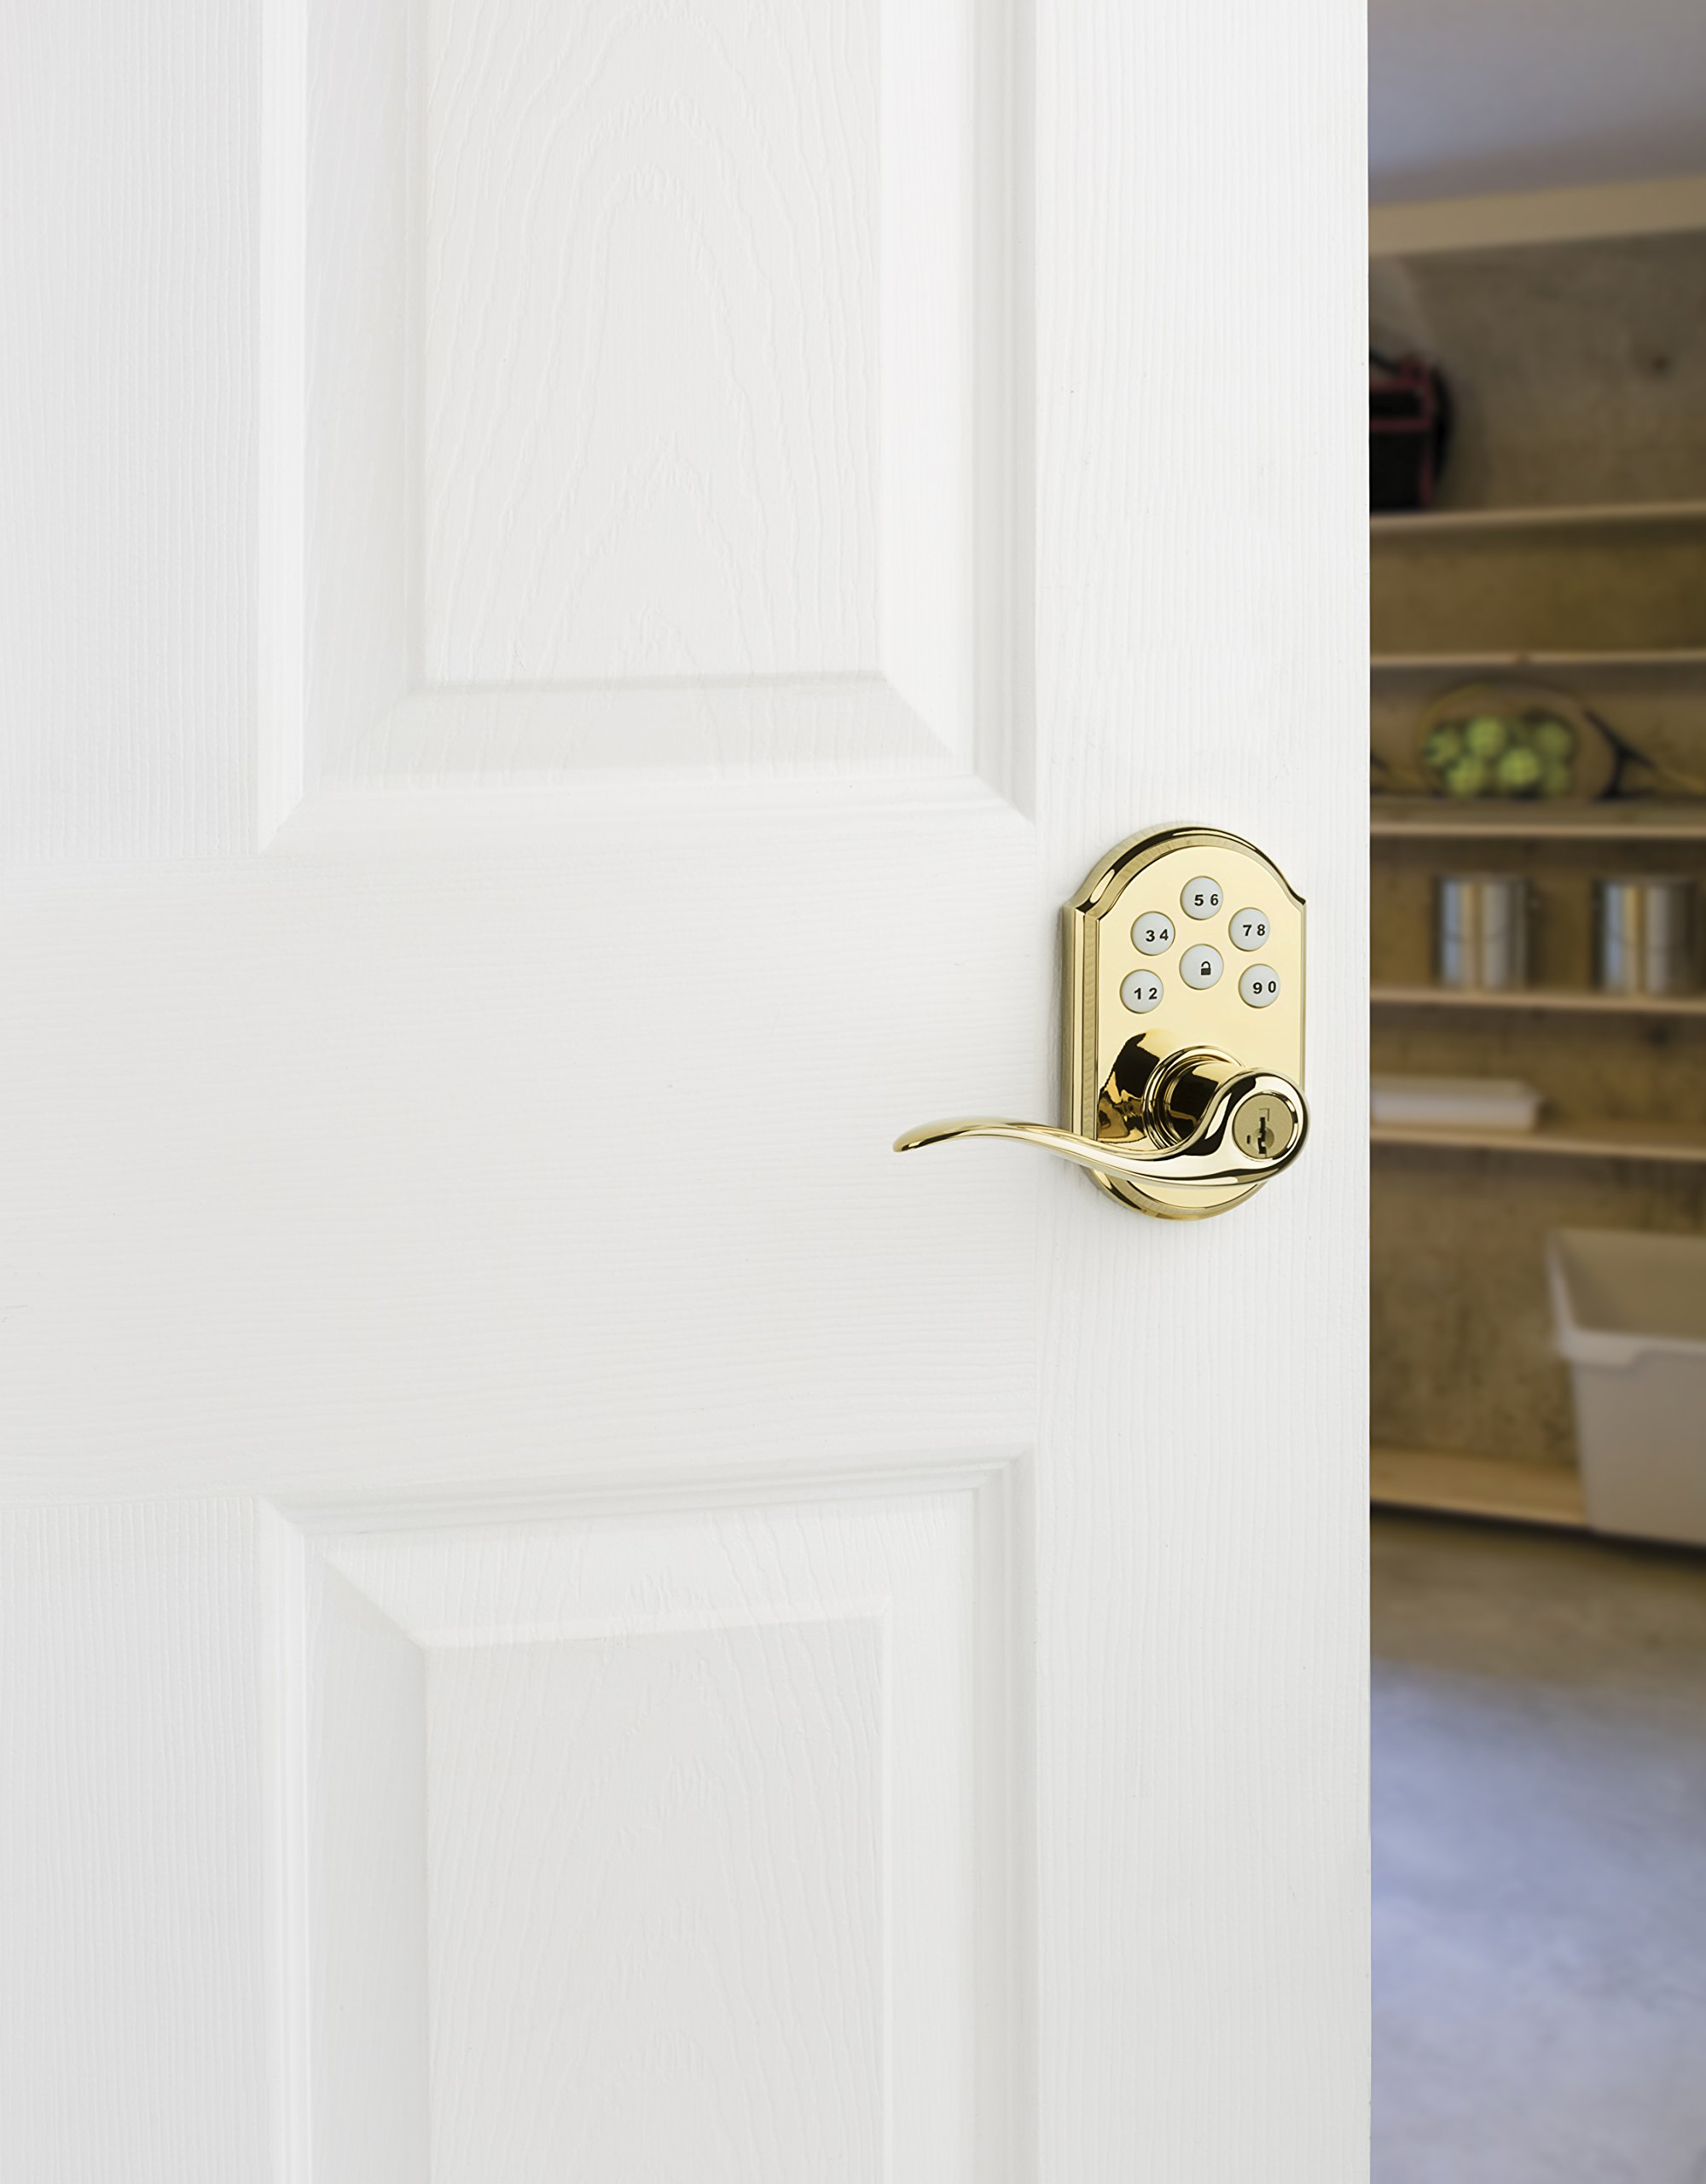 Kwikset 912 Z-Wave SmartCode Electronic Touchpad with Tustin Lever, Works with Amazon Alexa via SmartThings, Wink, or Iris featuring SmartKey in Polished Brass